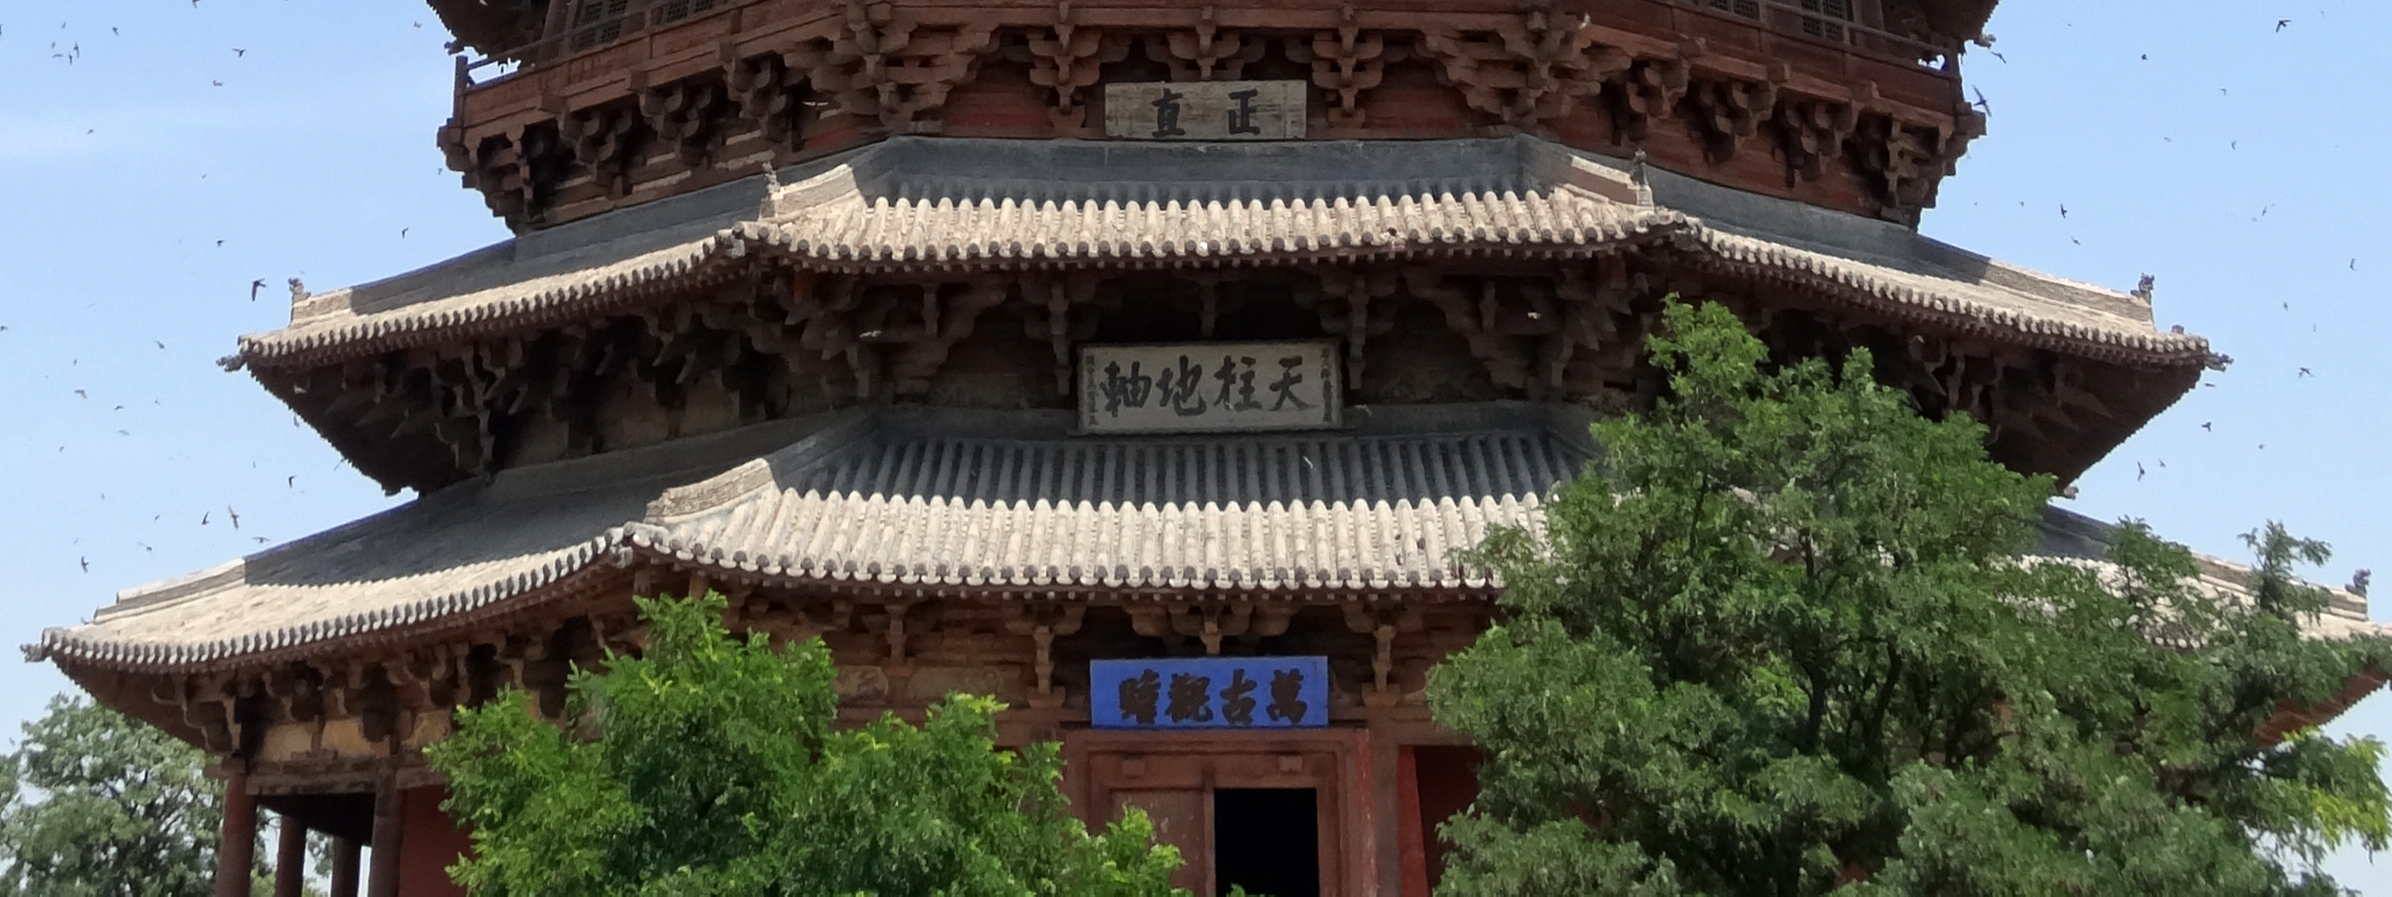 performing center in a vertical rise multilevel pagodas in china s